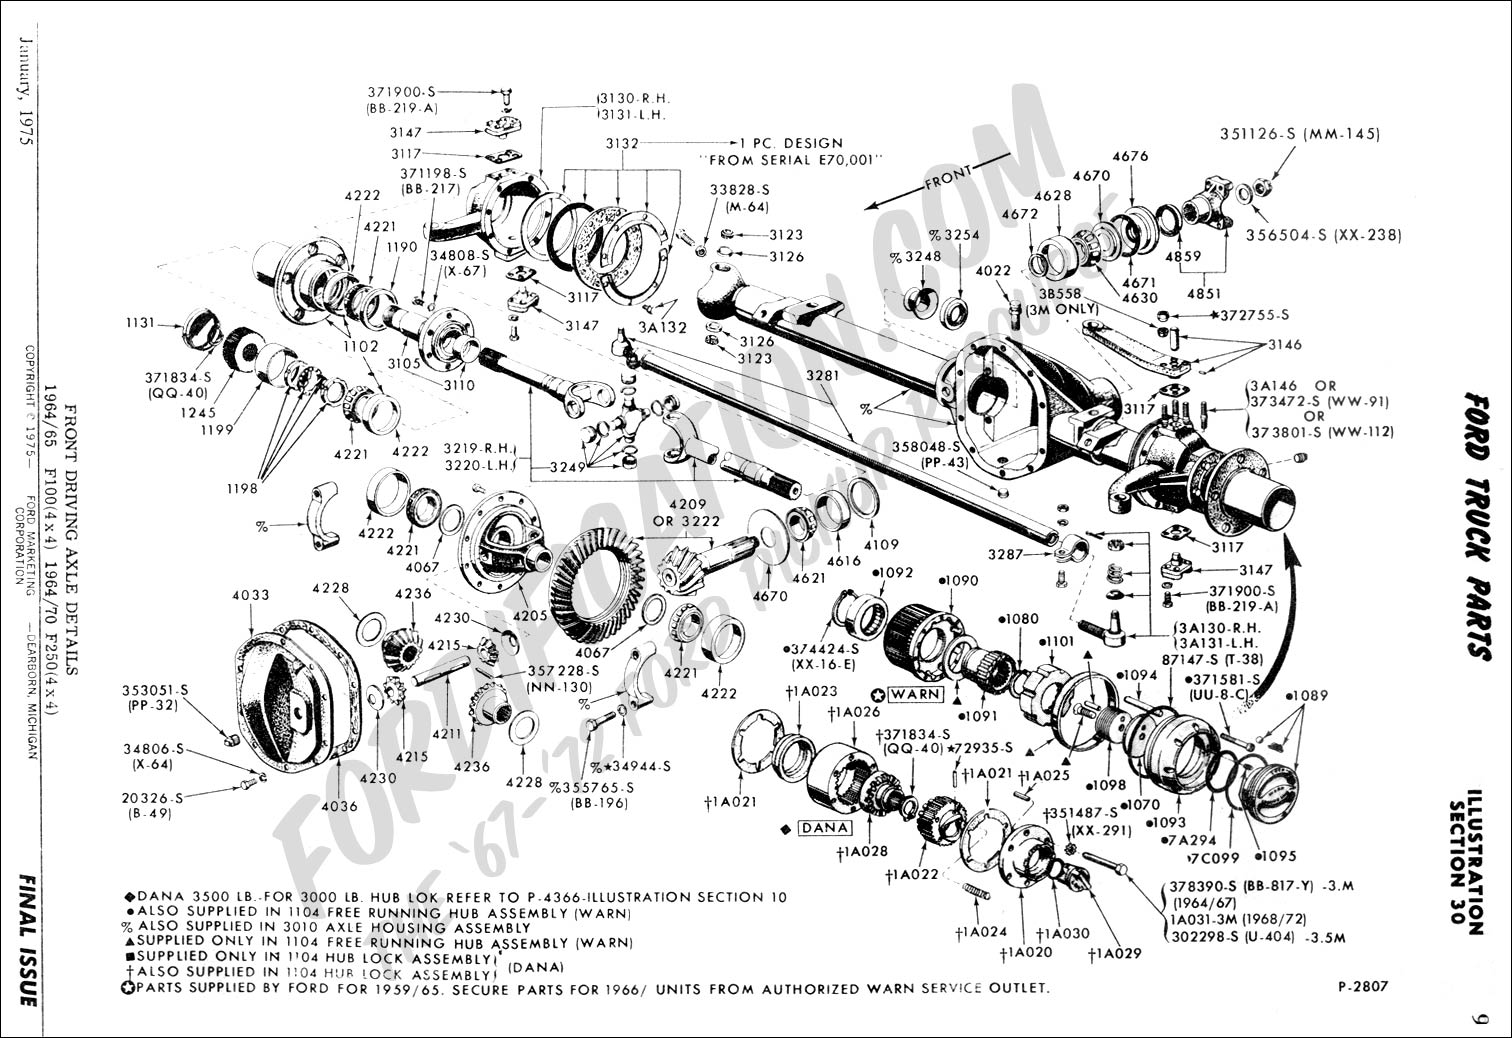 2000 ford e250 radio wiring diagram 2007 f150 xlt gear great installation of 1979 front axle diagrams rh 17 shareplm de 1997 fuse box